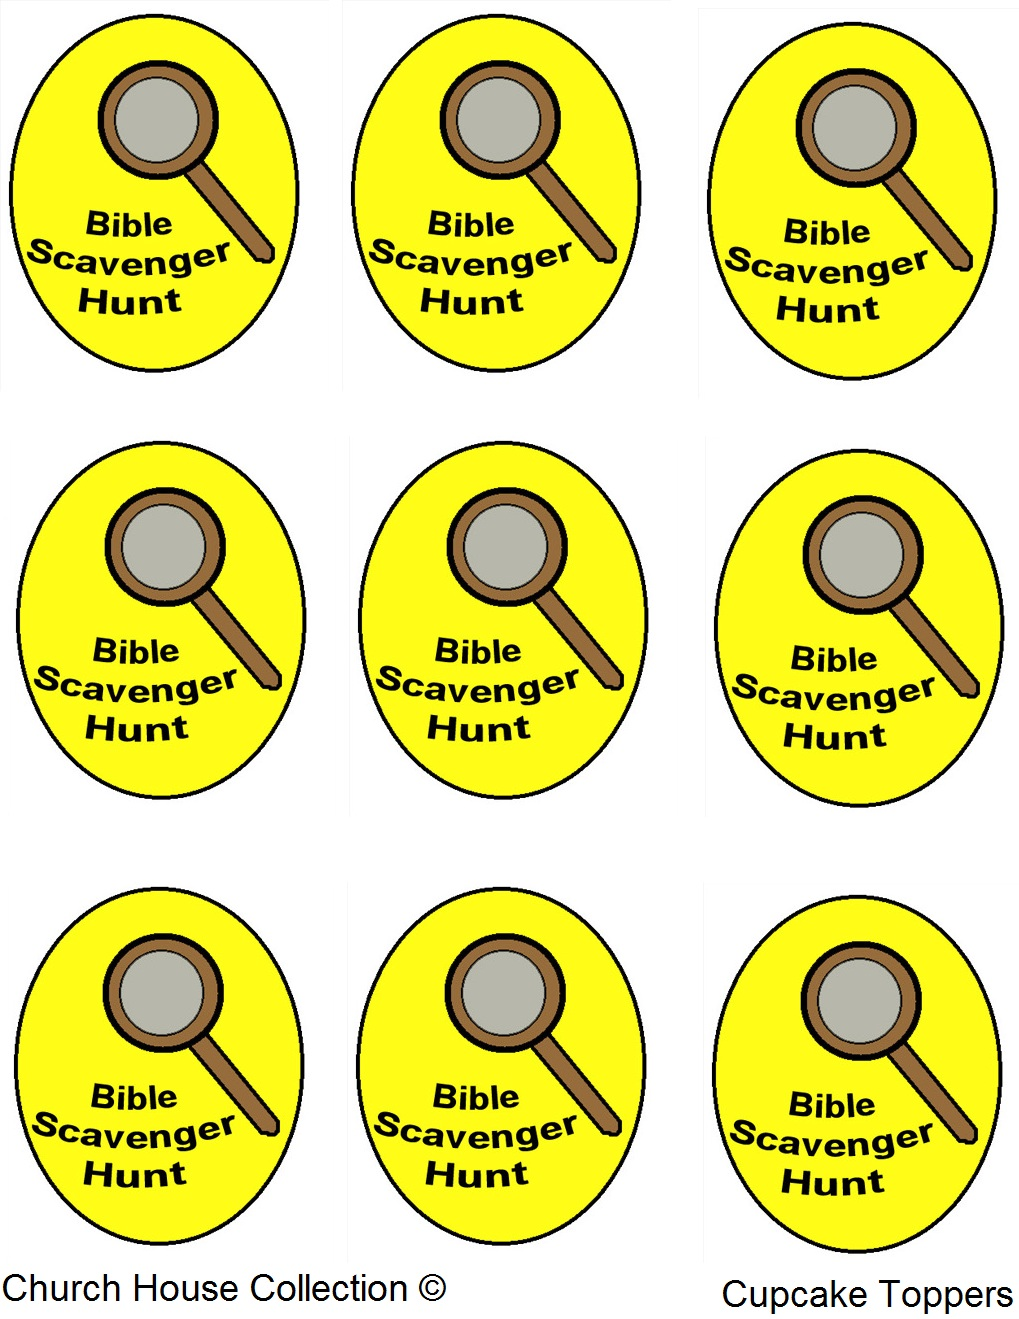 church house collection blog bible scavenger hunt cupcakes. Black Bedroom Furniture Sets. Home Design Ideas